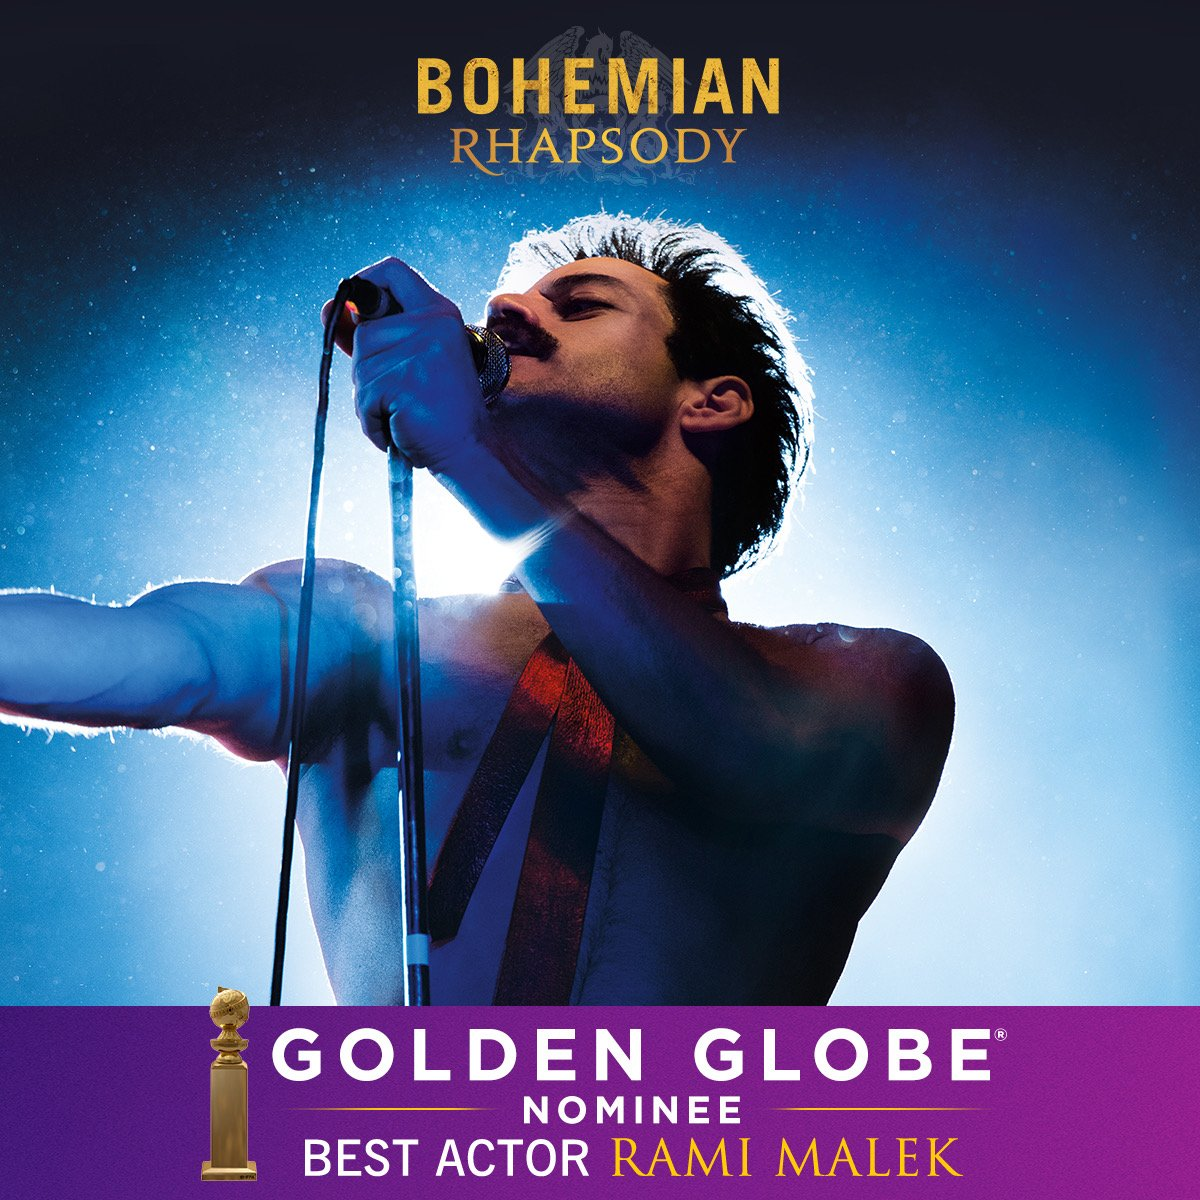 And congratulations to @ItsRamiMalek for his truly deserved #GoldenGlobes nomination for Best Actor in a Motion Picture - Drama!  #BohemianRhapsody<br>http://pic.twitter.com/5BNkCrg3Bq